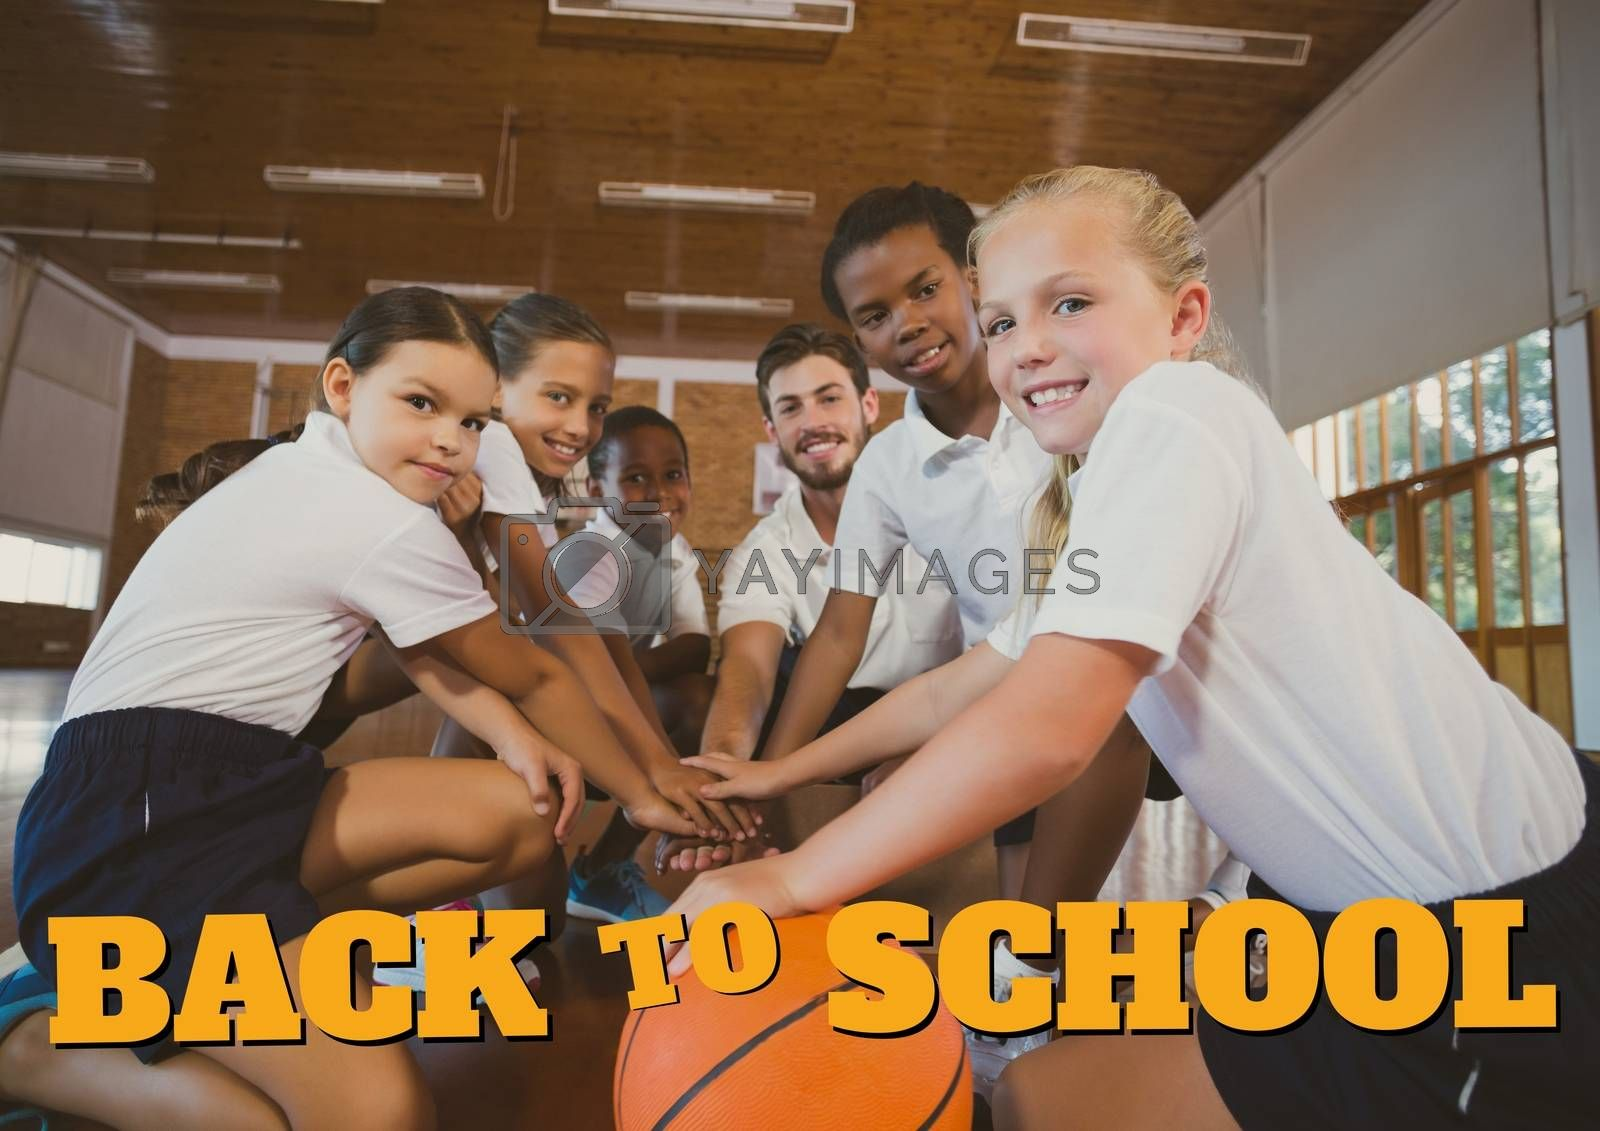 Digital composite of Education and back to school text and kids playing basketball